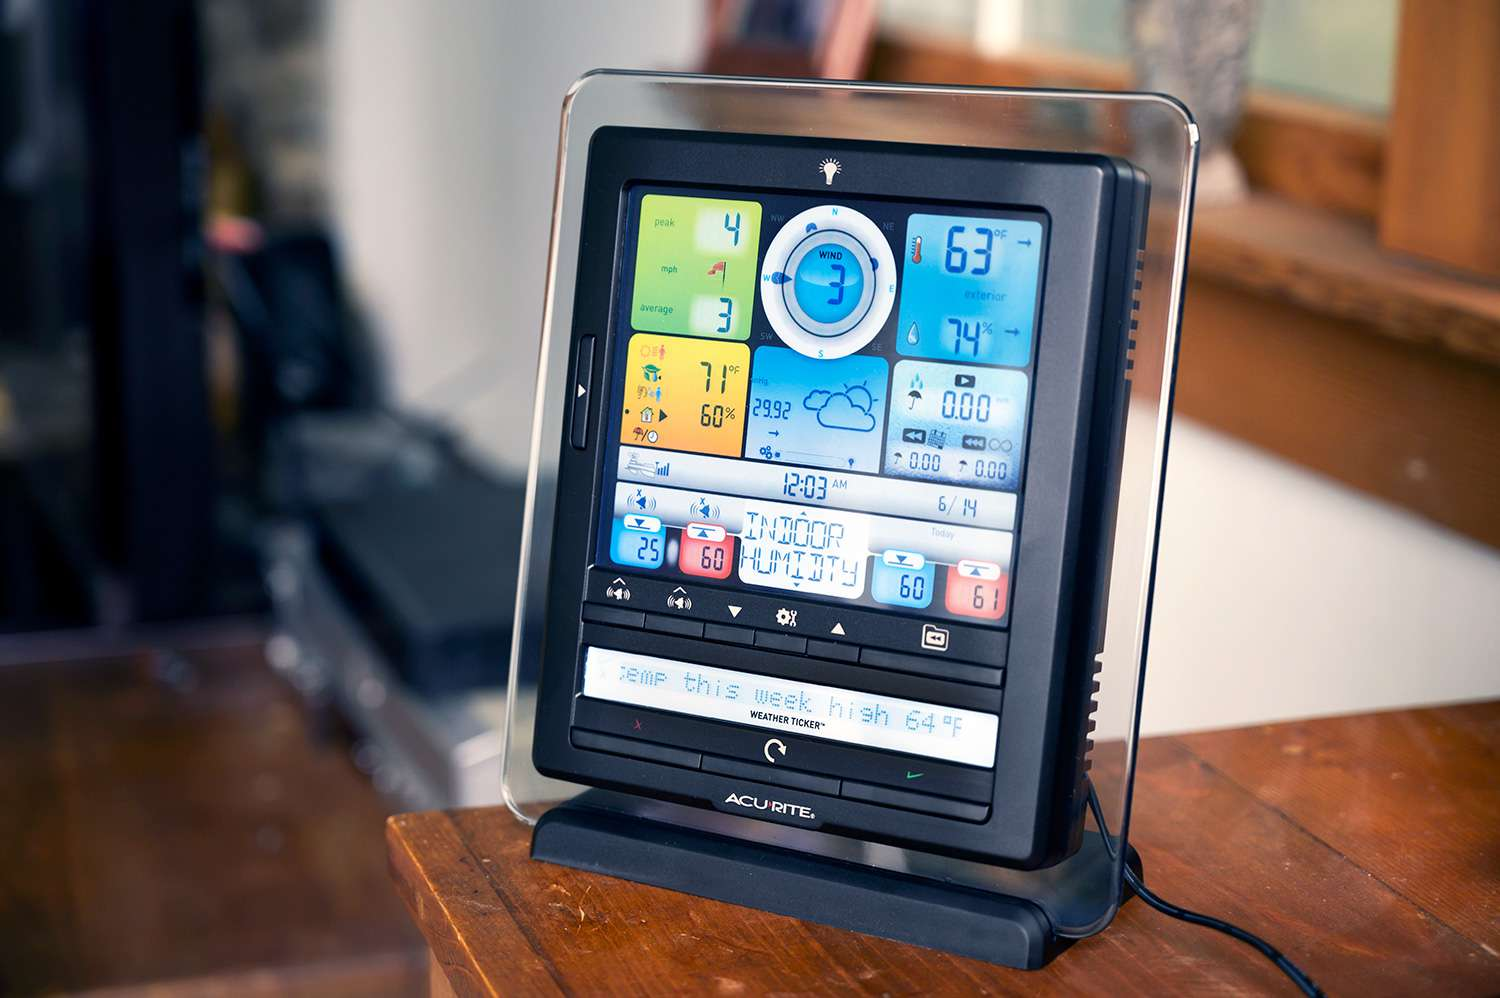 AcuRite Pro Weather Station 01036M Review